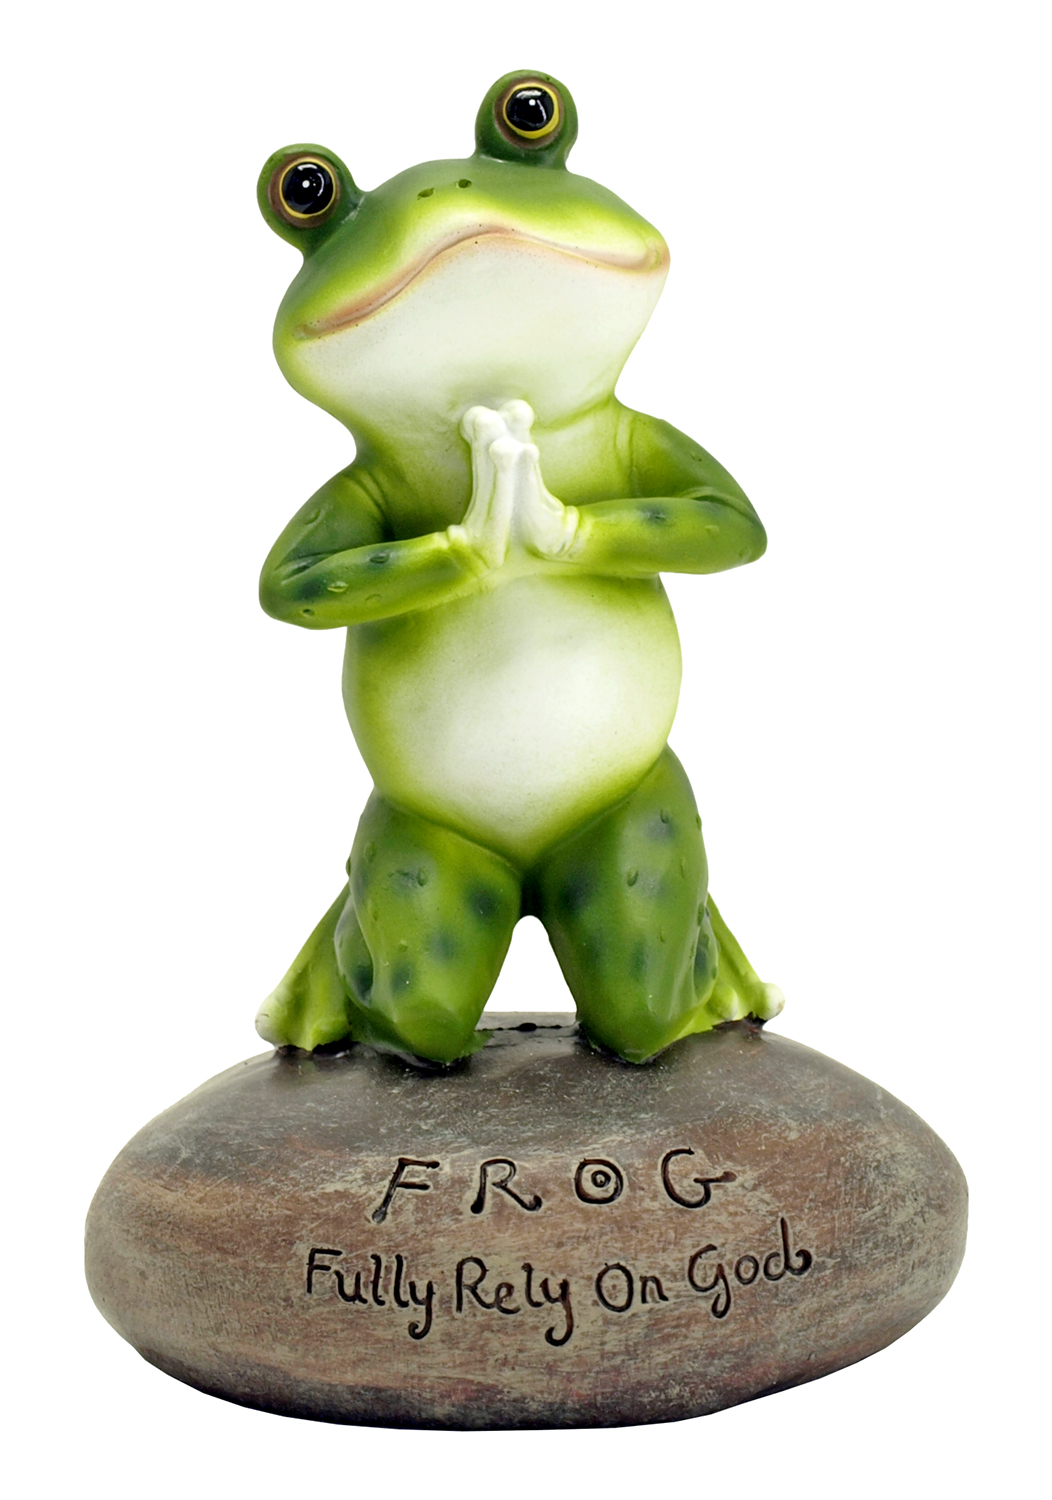 Blessed Assurance - Frog Prayer Figurine Statue